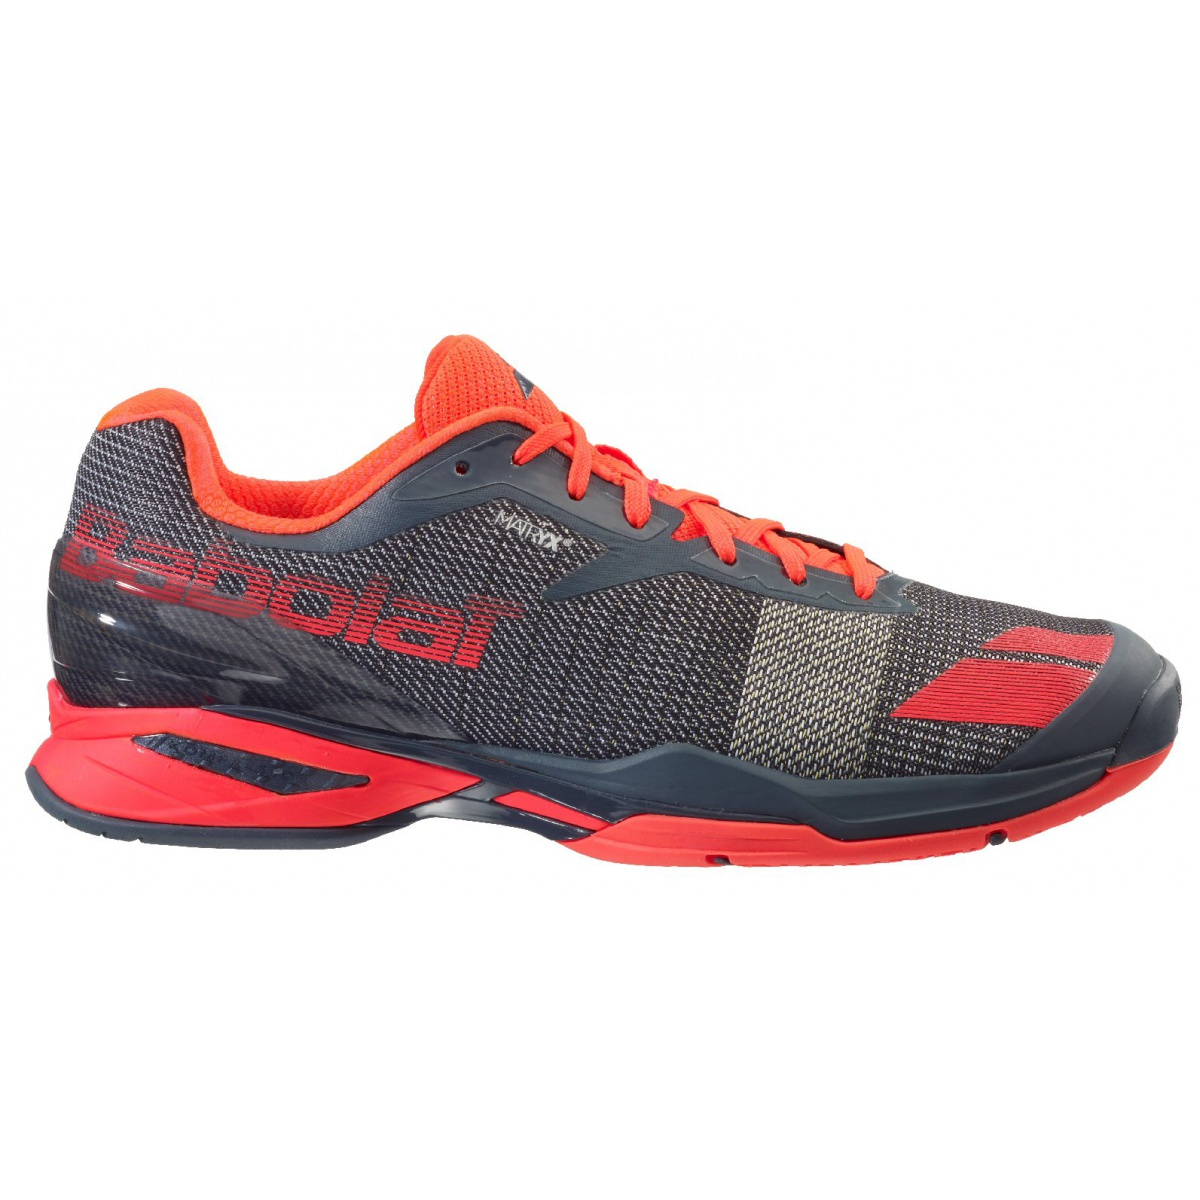 Joma Tennis Shoes Online